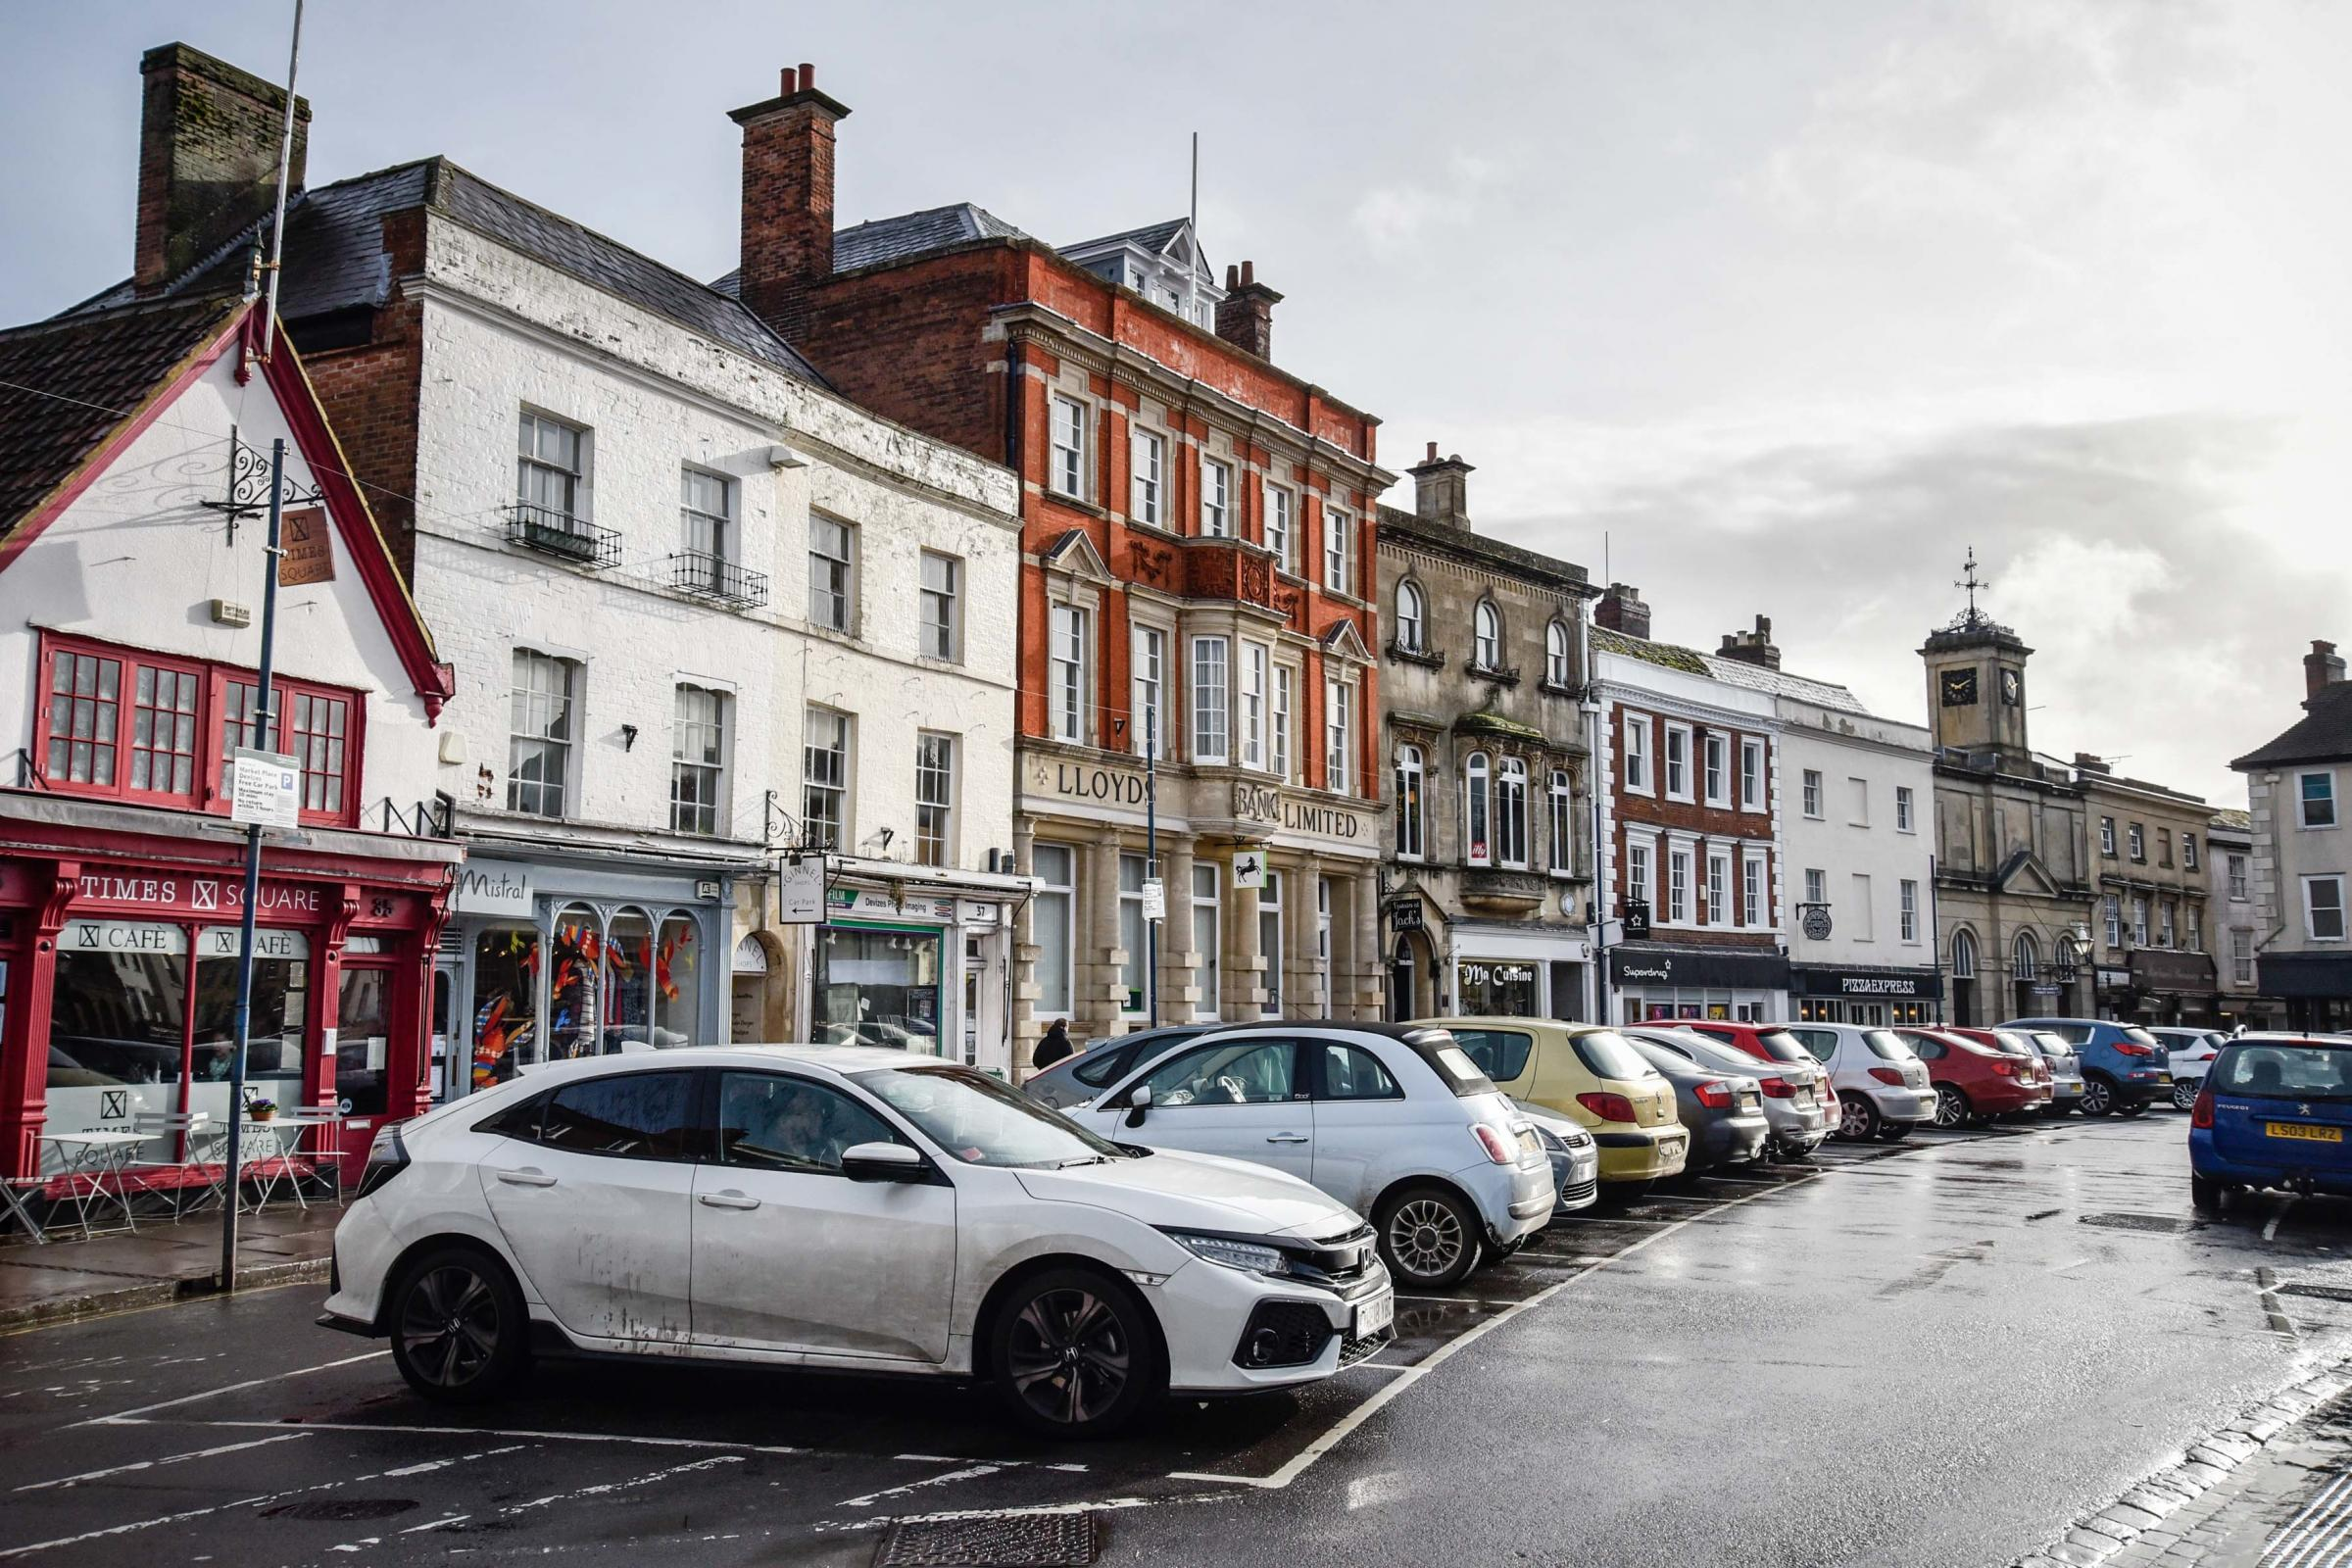 Paid For Parking And Community Space Deal For Devizes Market